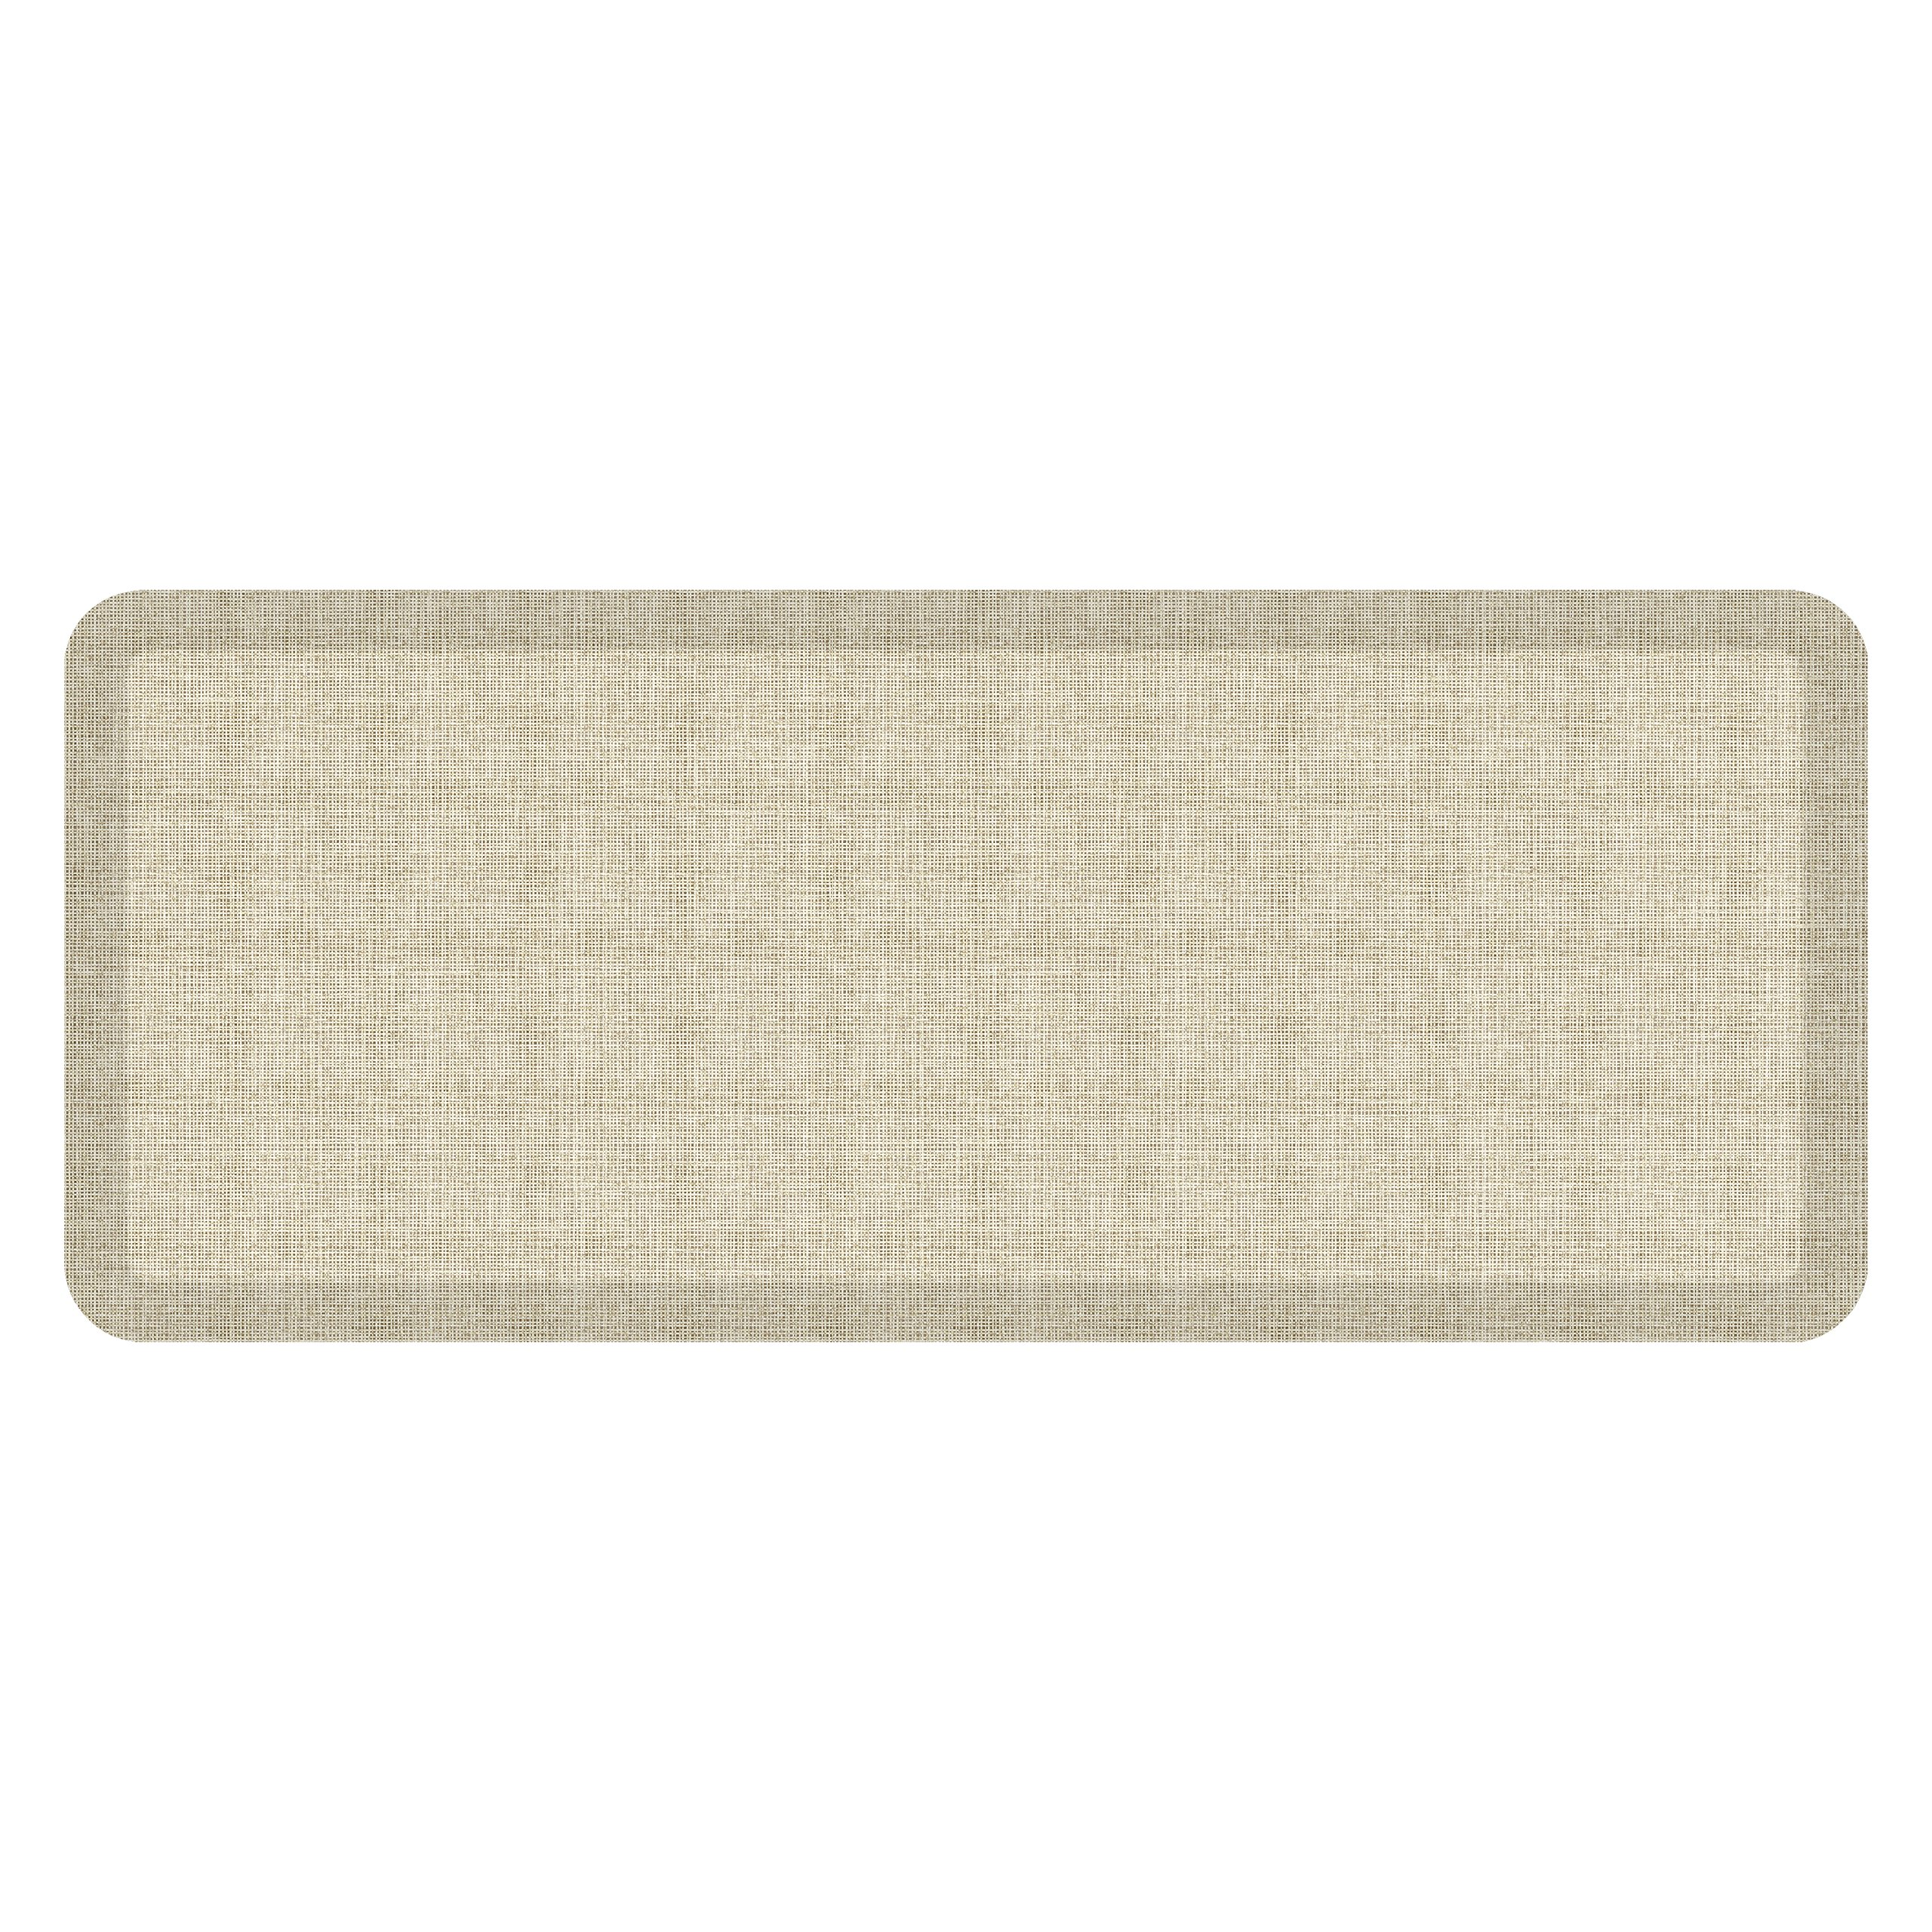 """NewLife by GelPro Anti-Fatigue Designer Comfort Kitchen Floor Mat, 20x48'', Tweed Antique White Stain Resistant Surface with 3/4"""" Thick Ergo-foam Core for Health and Wellness"""